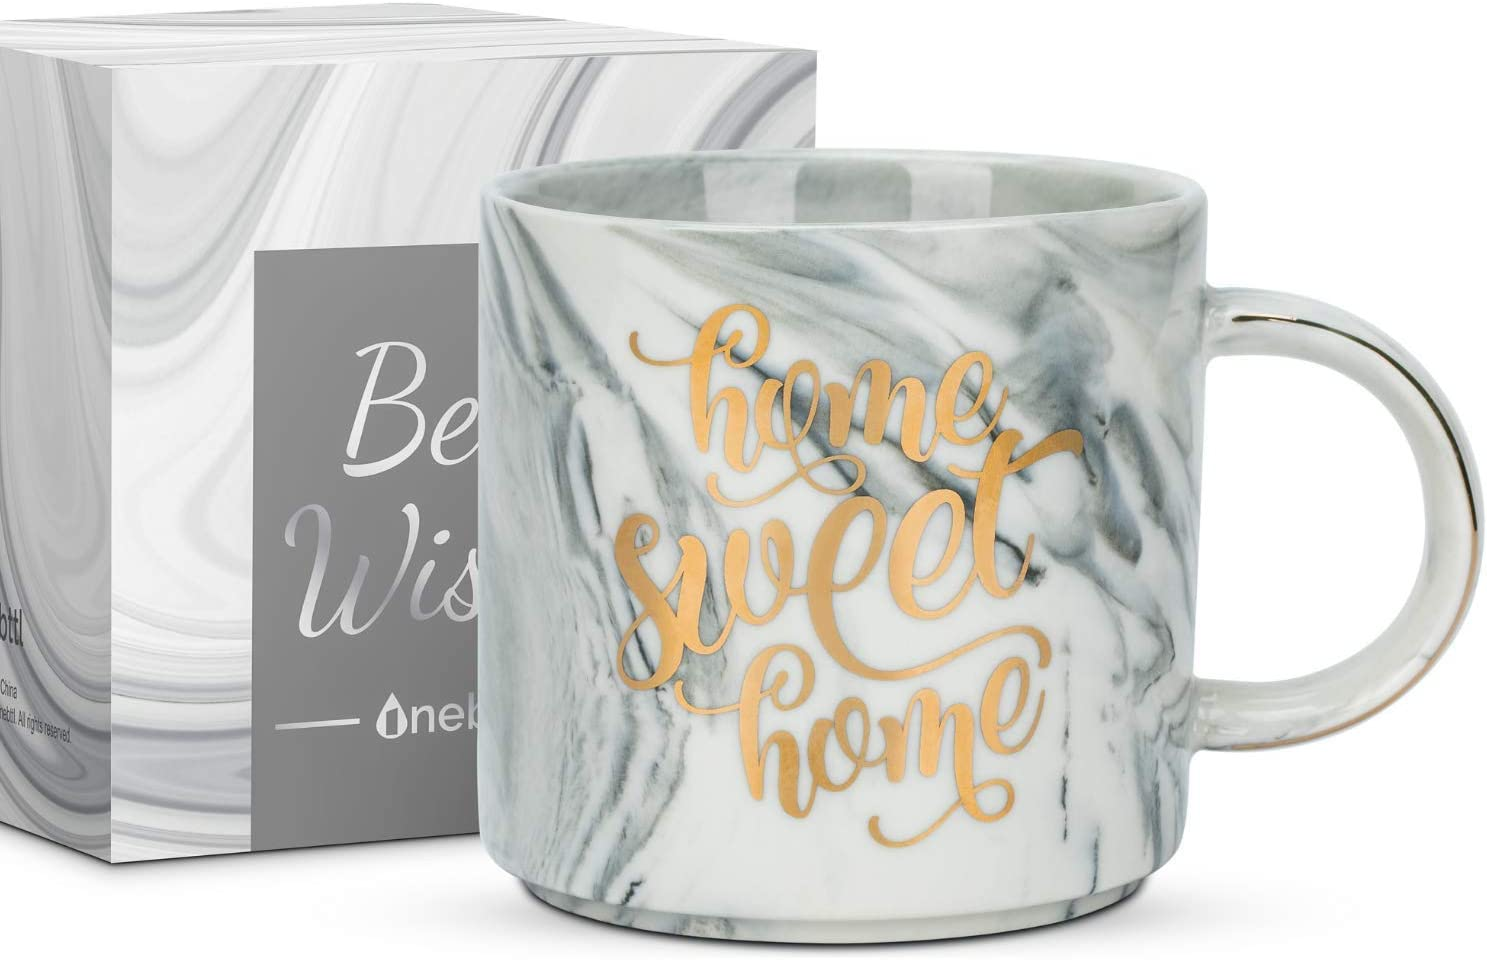 Amazon Com Housewarming Gifts For New Home House Warming Presents For Couple Friends Unique New Home Gift Ideas With Quote Home Sweet Home Marble Ceramic 11 Oz Coffee Cup For Women Men Onebttl Kitchen Dining